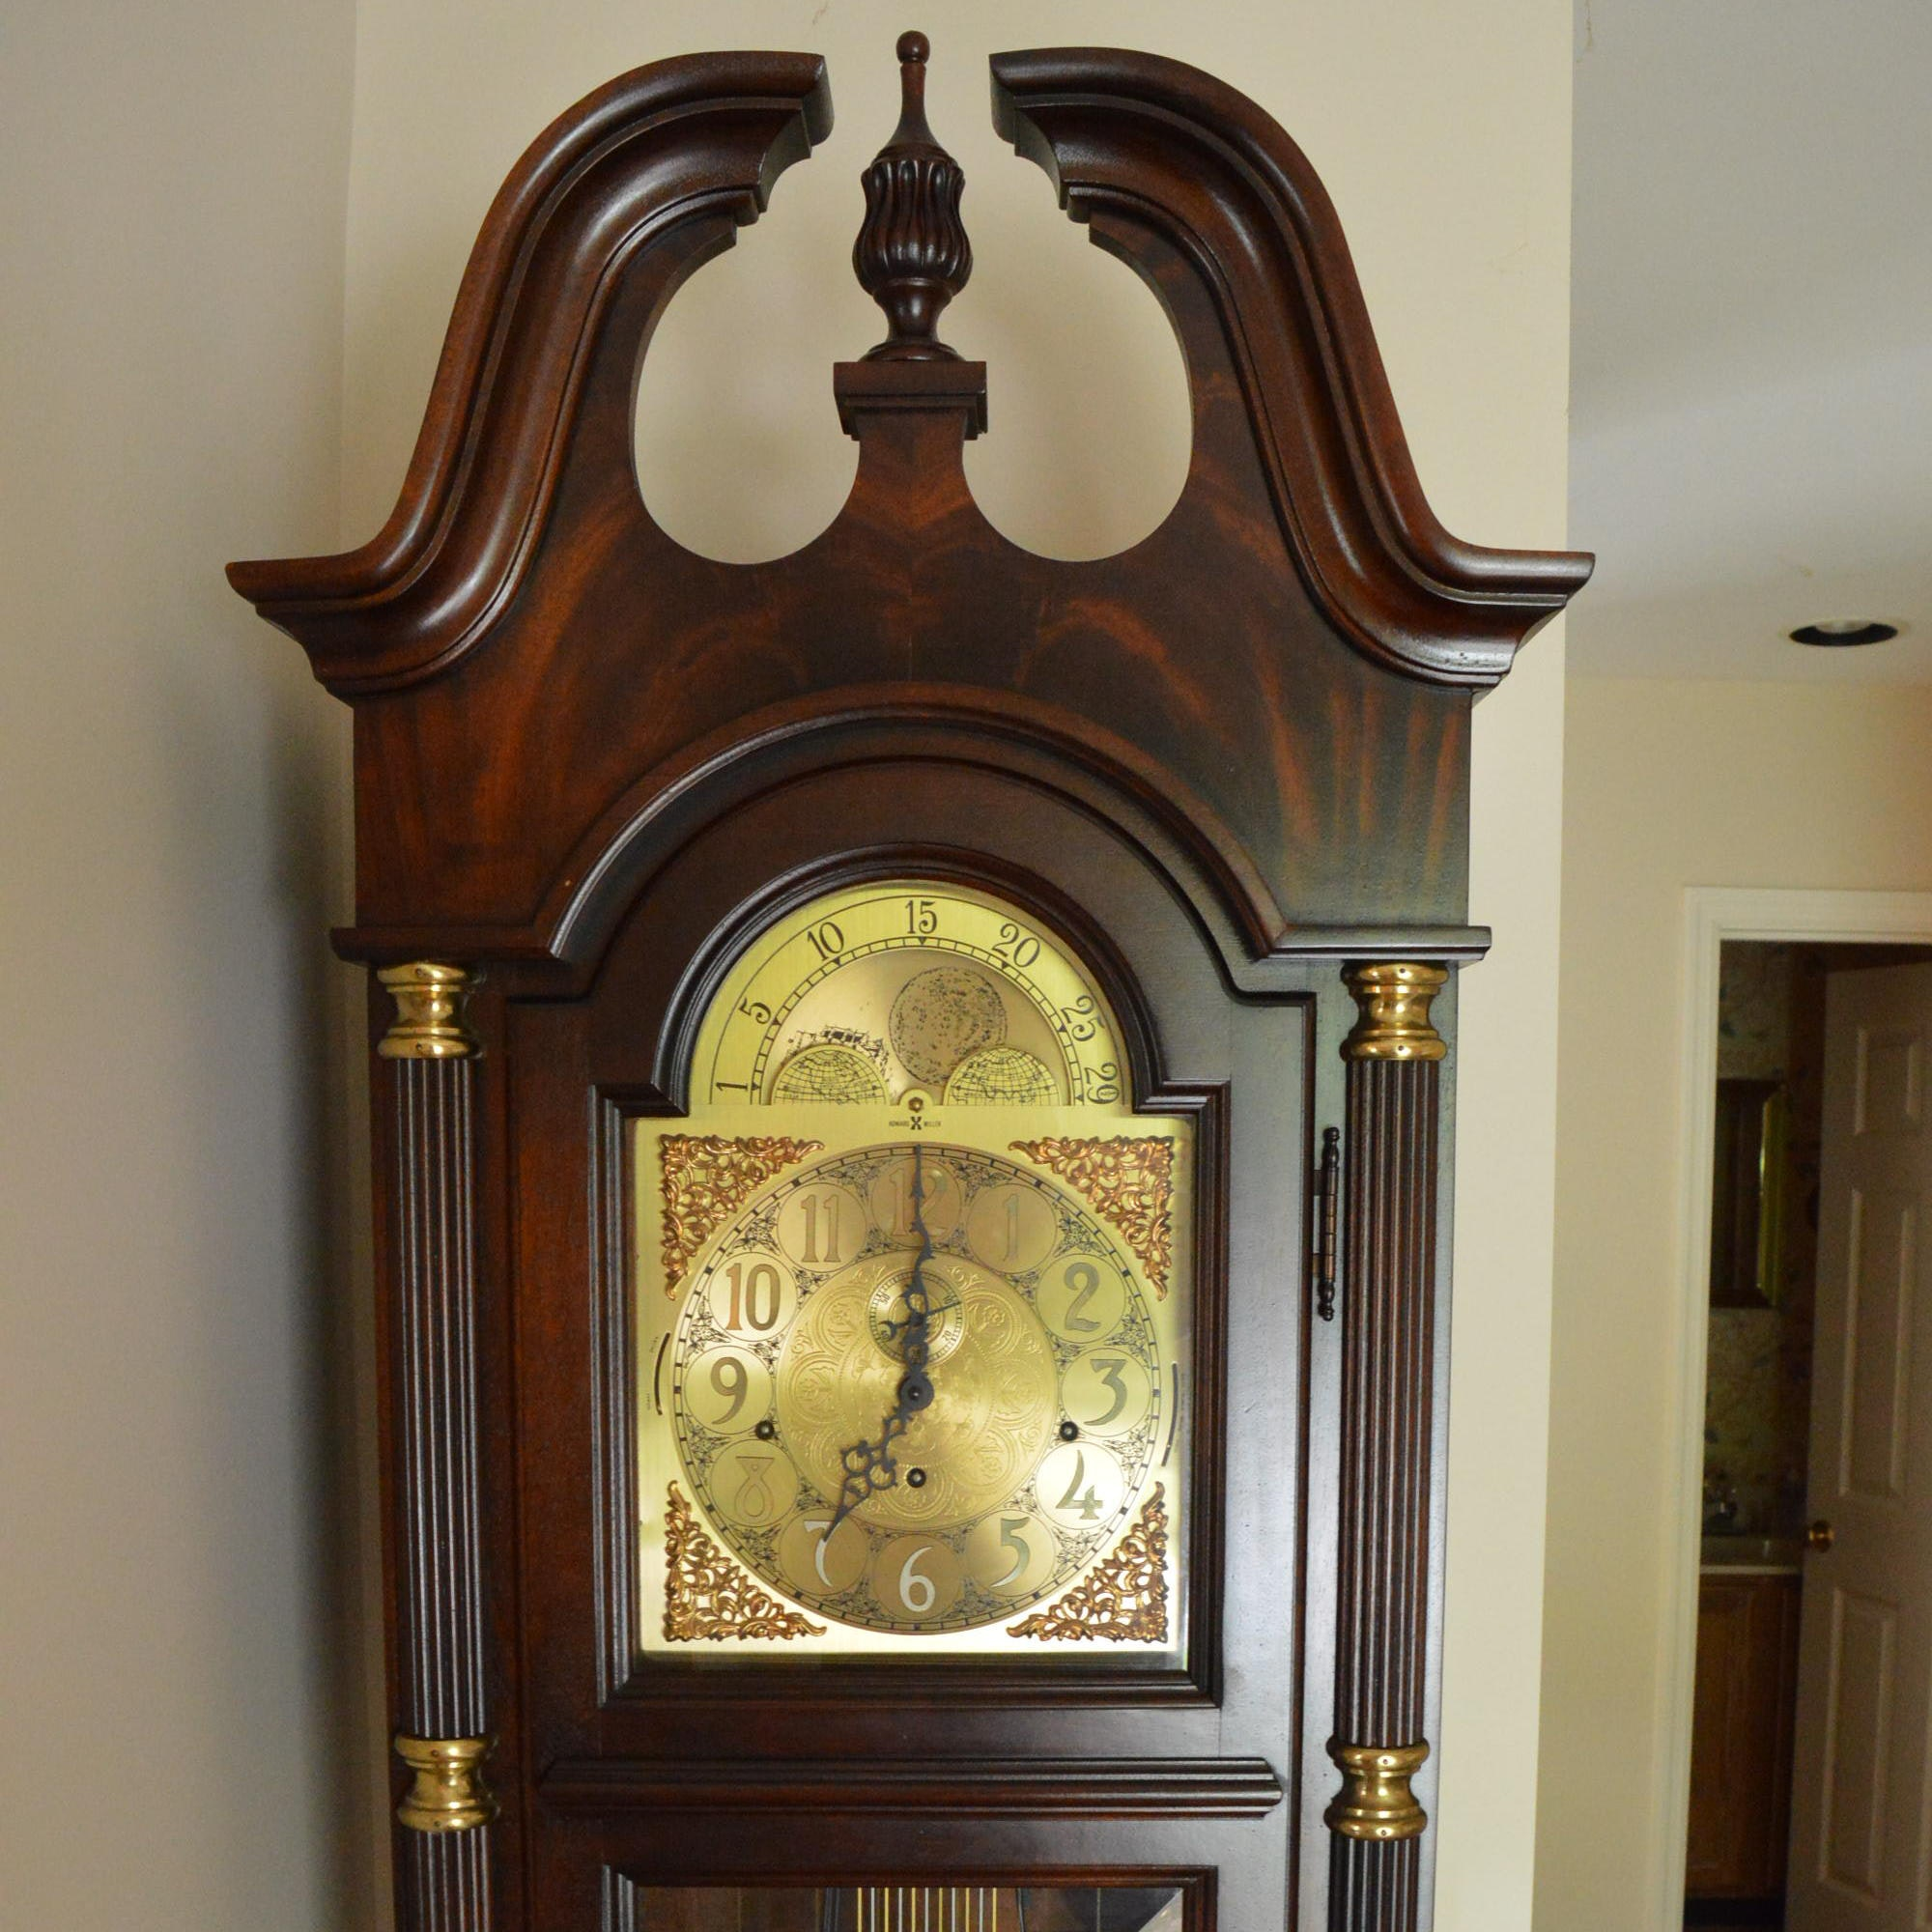 Queen Anne Style Mahogany Grandfather Clock by Howard Miller Clock Co.